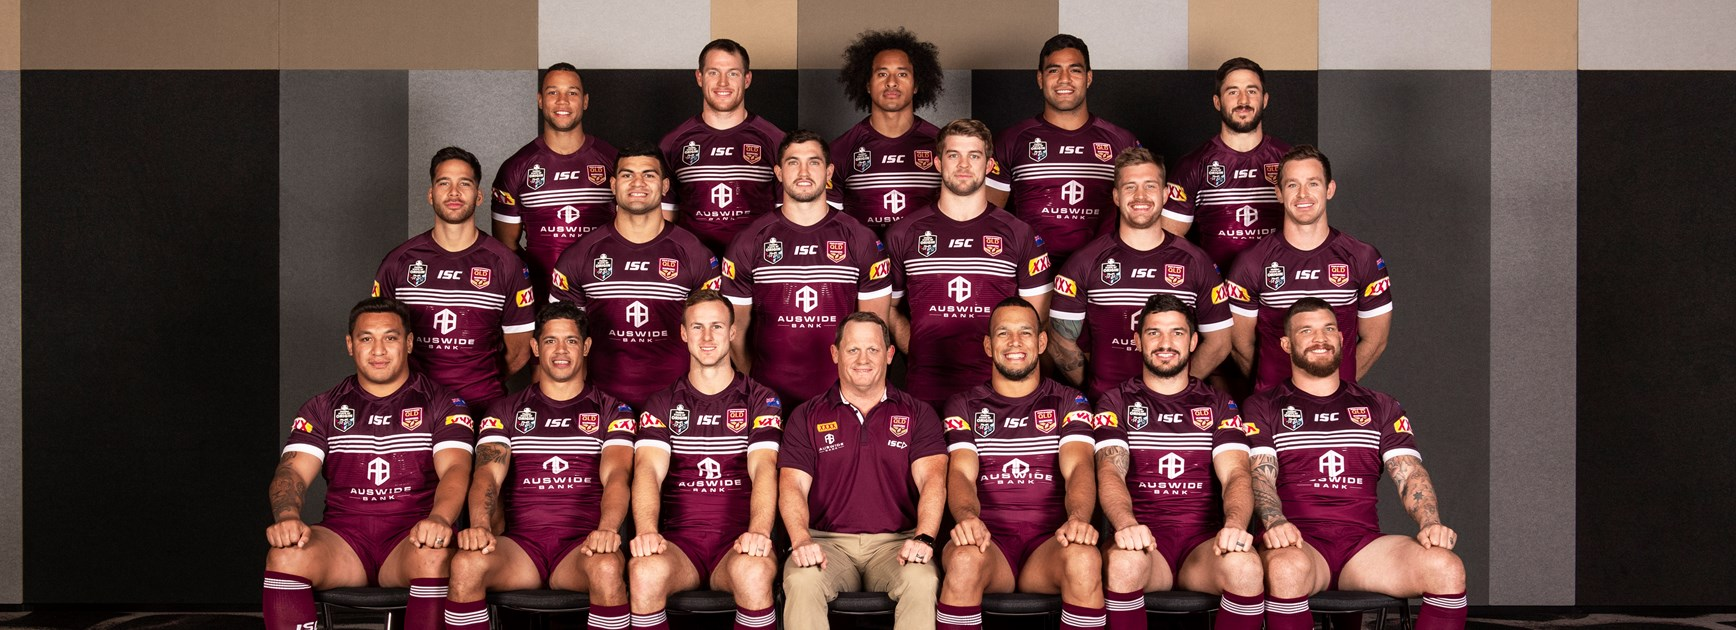 Maroons line up game 2 lords of the realm 2 game download